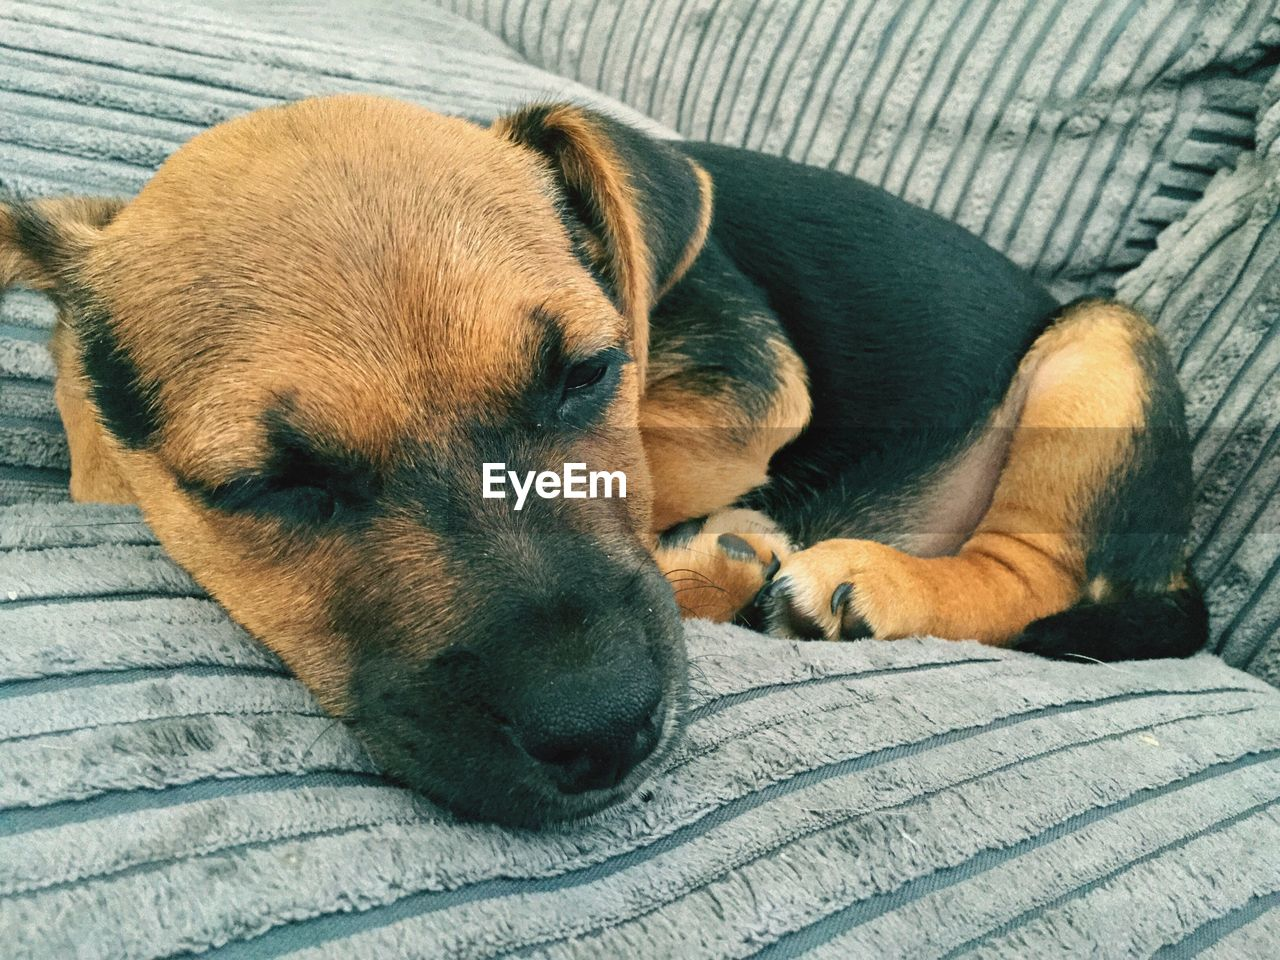 dog, canine, one animal, domestic, pets, relaxation, mammal, domestic animals, animal, animal themes, resting, vertebrate, lying down, sleeping, no people, close-up, furniture, eyes closed, indoors, bed, animal head